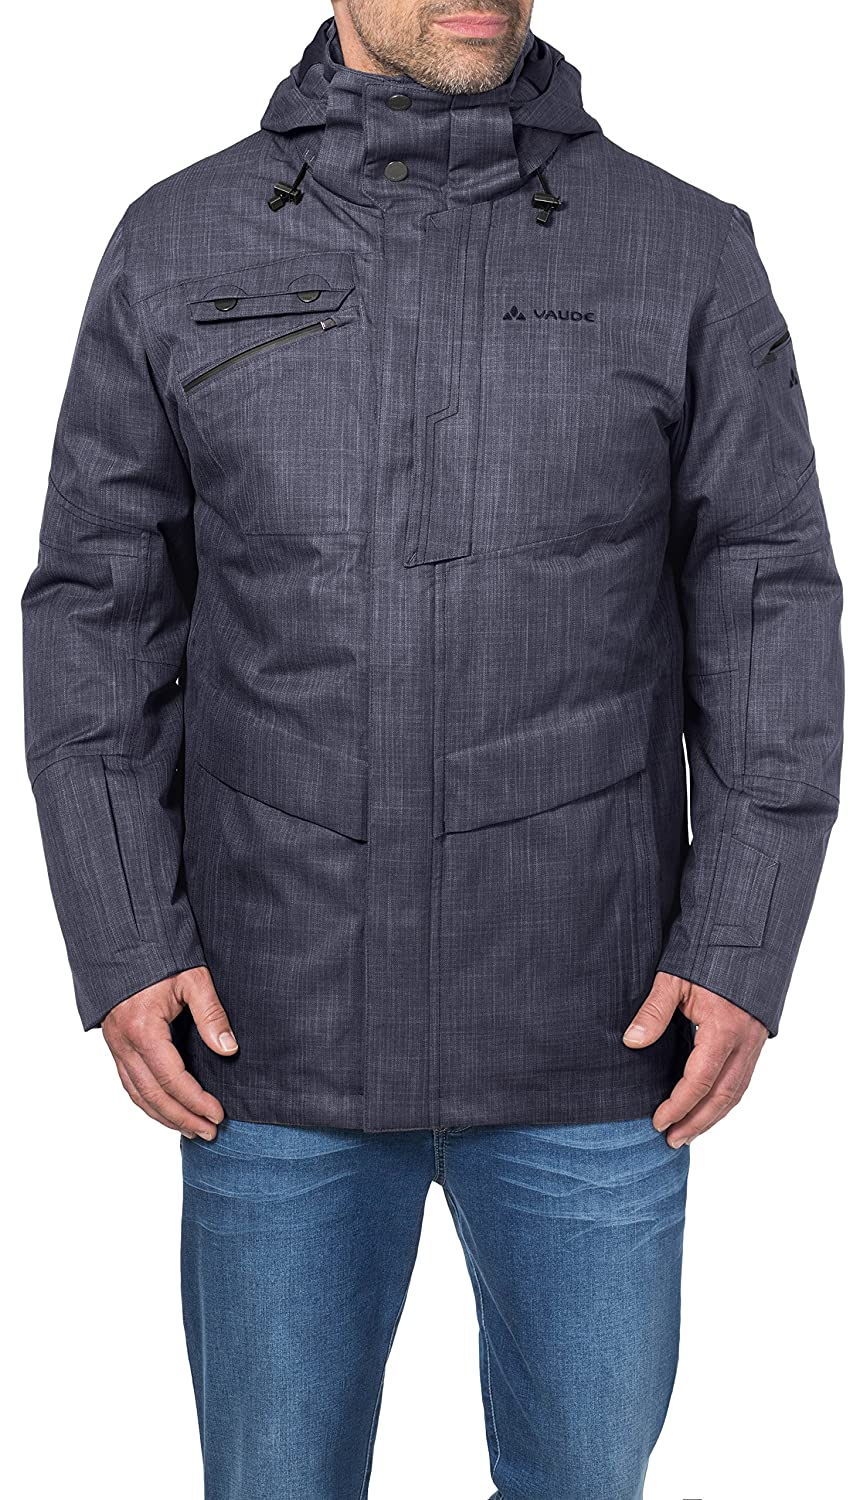 Wasco VAUDE Men's Jacket Men's Jacket